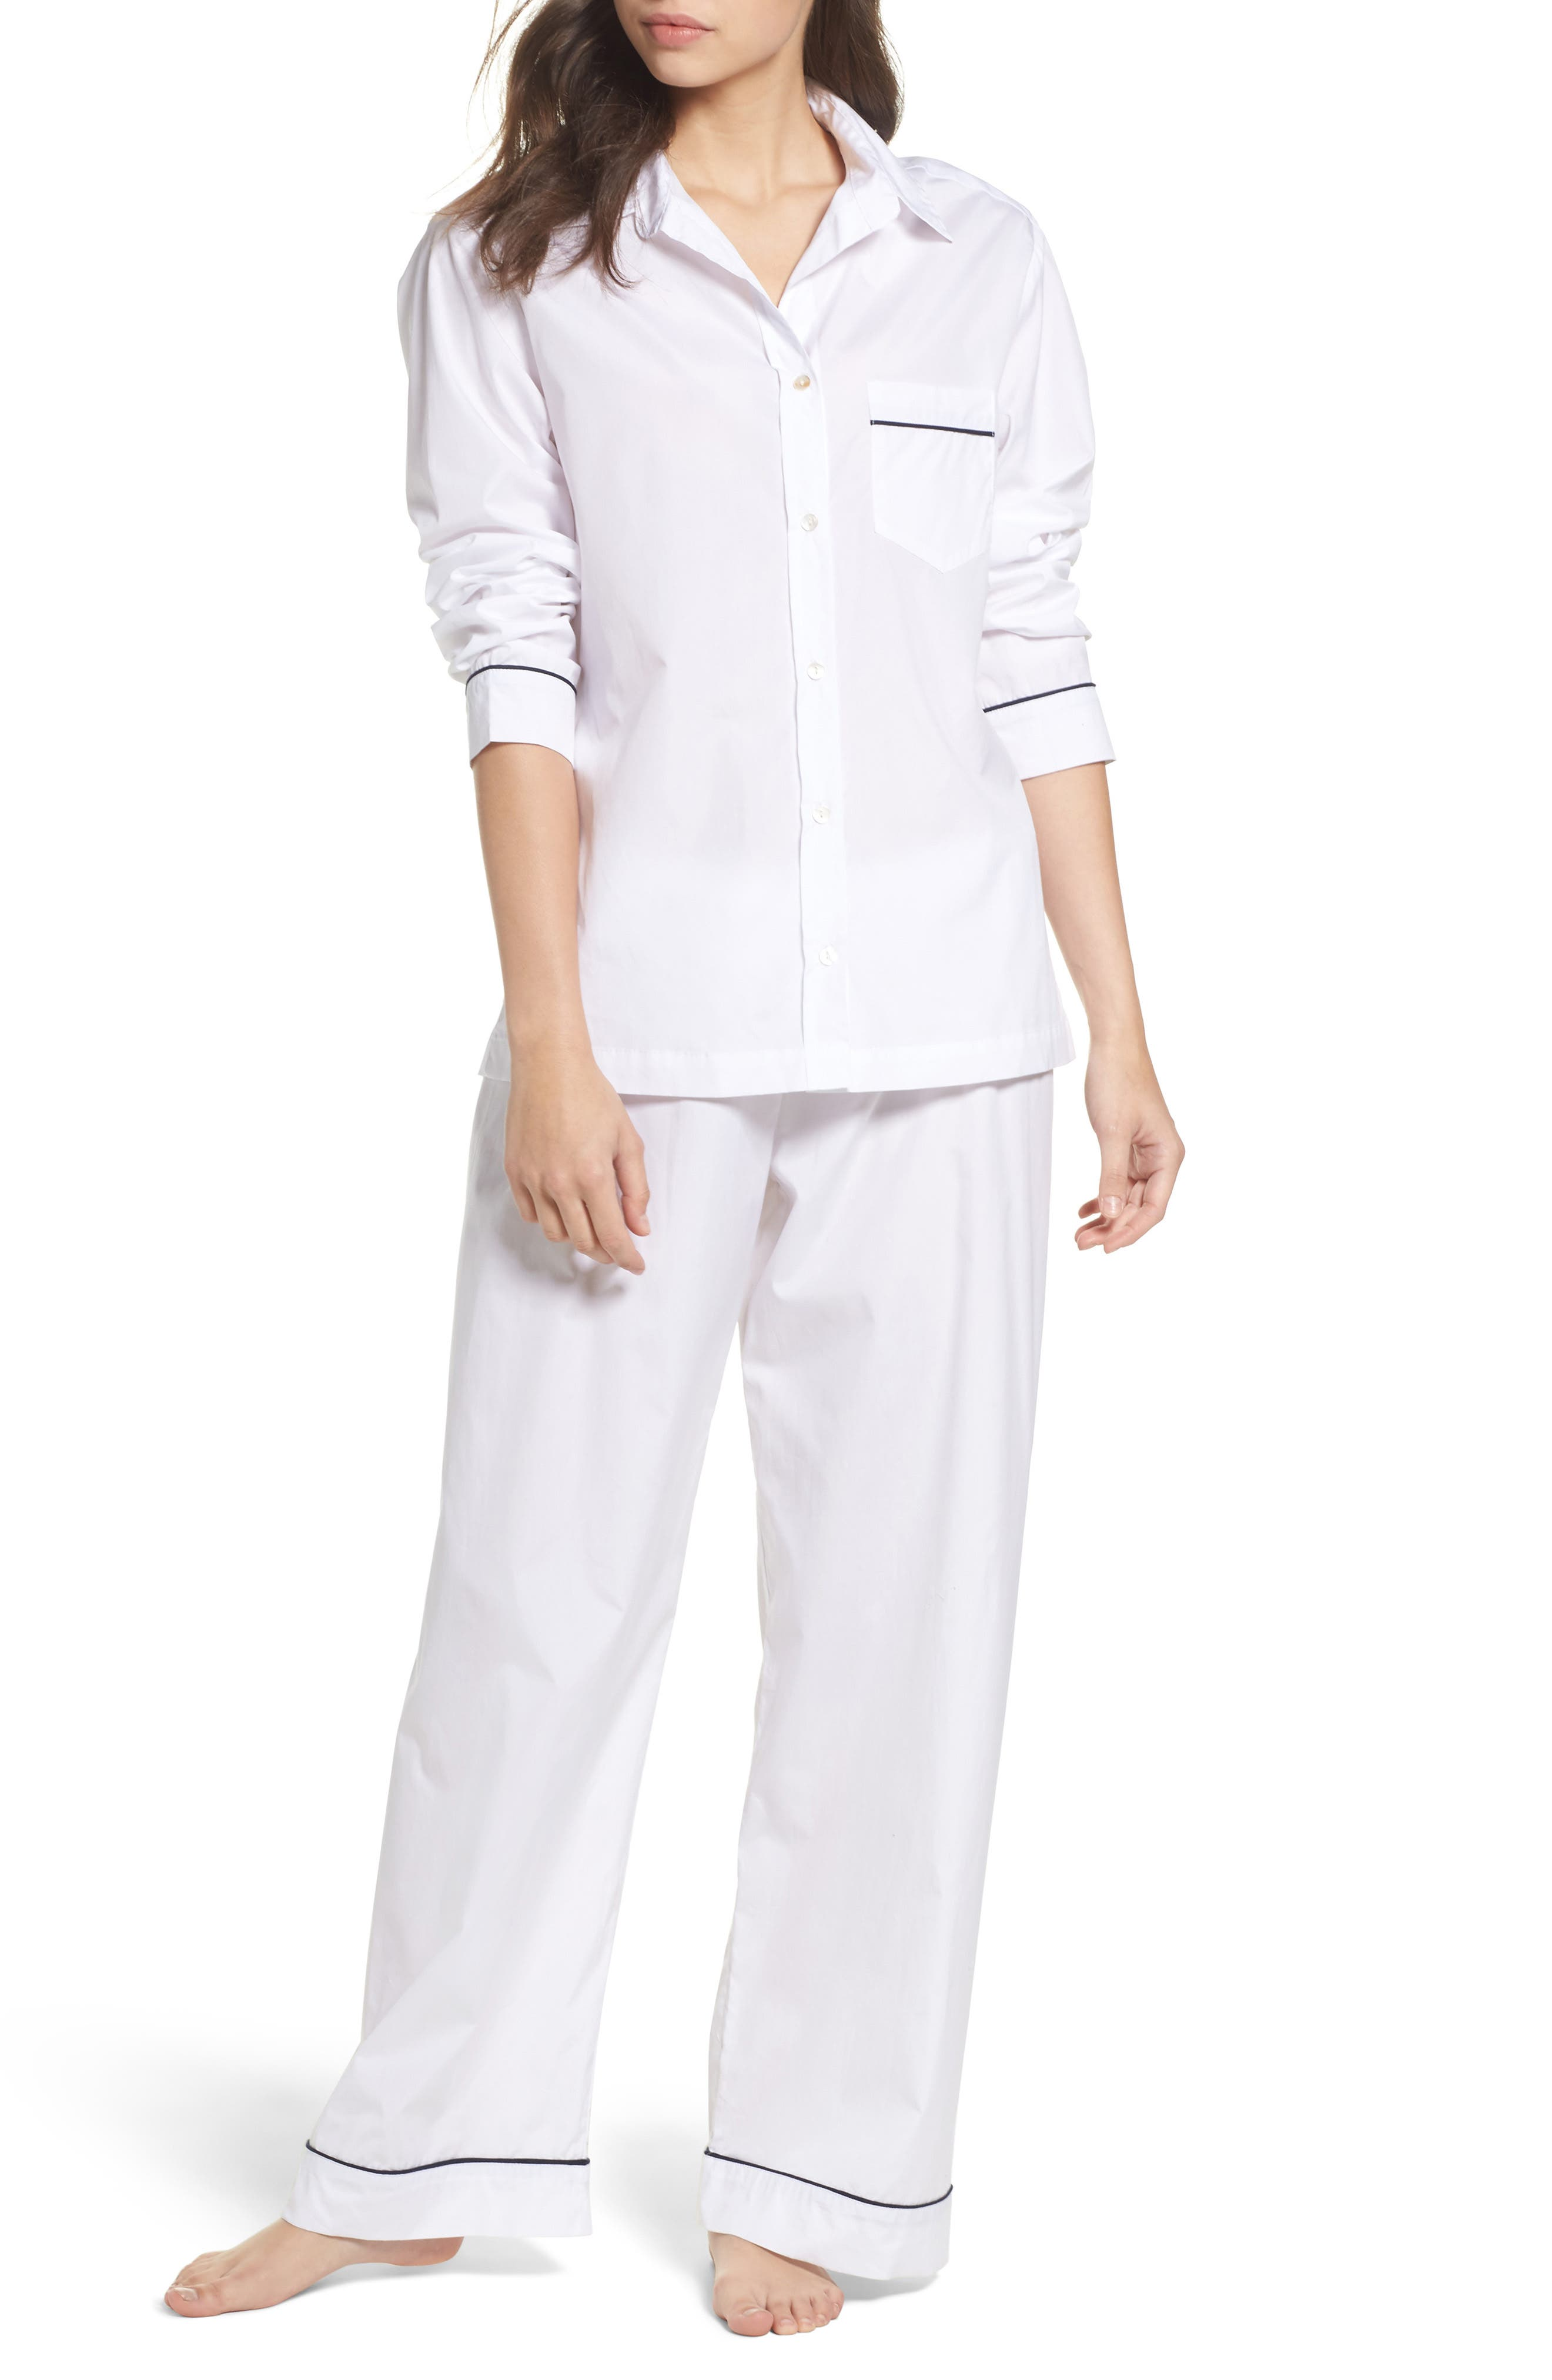 Piped Pajamas,                         Main,                         color, White With Navy Piping